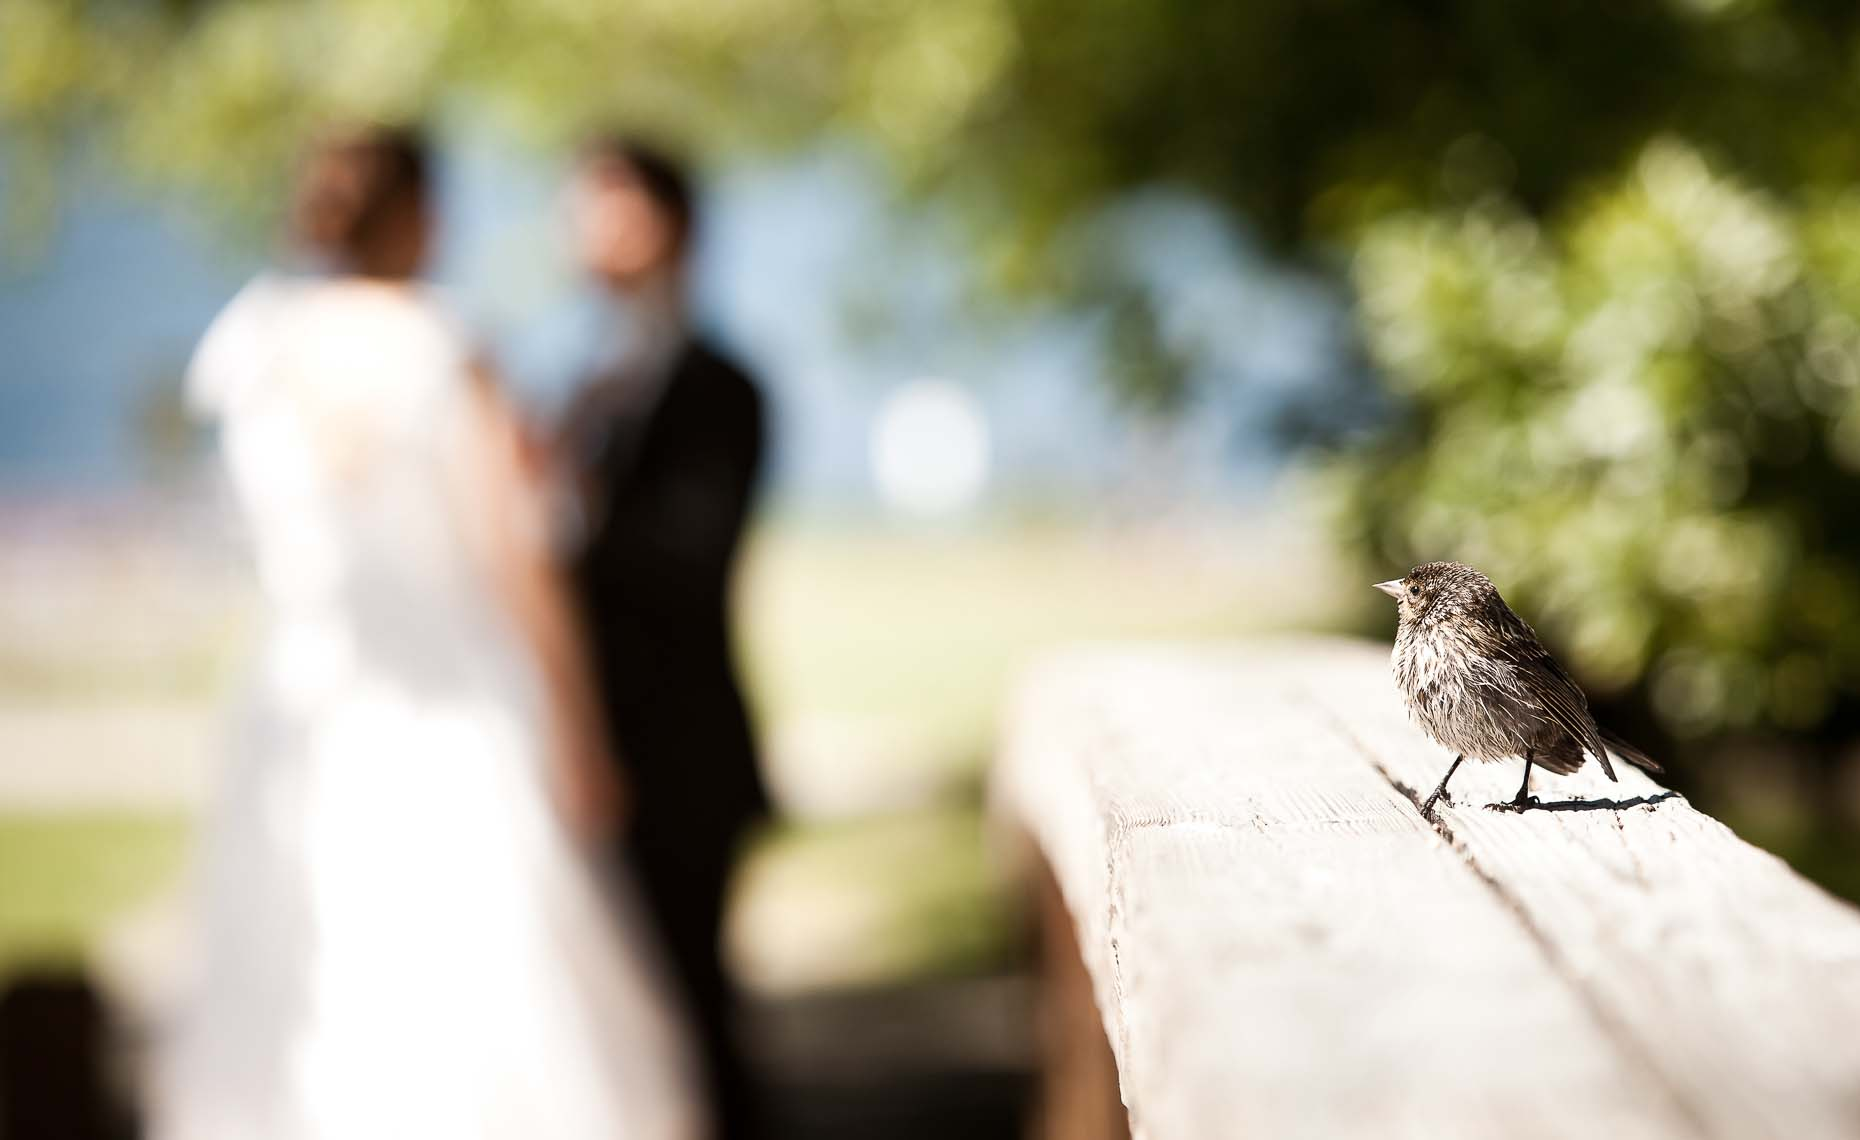 Vancouver wedding photographer captures detail of bird